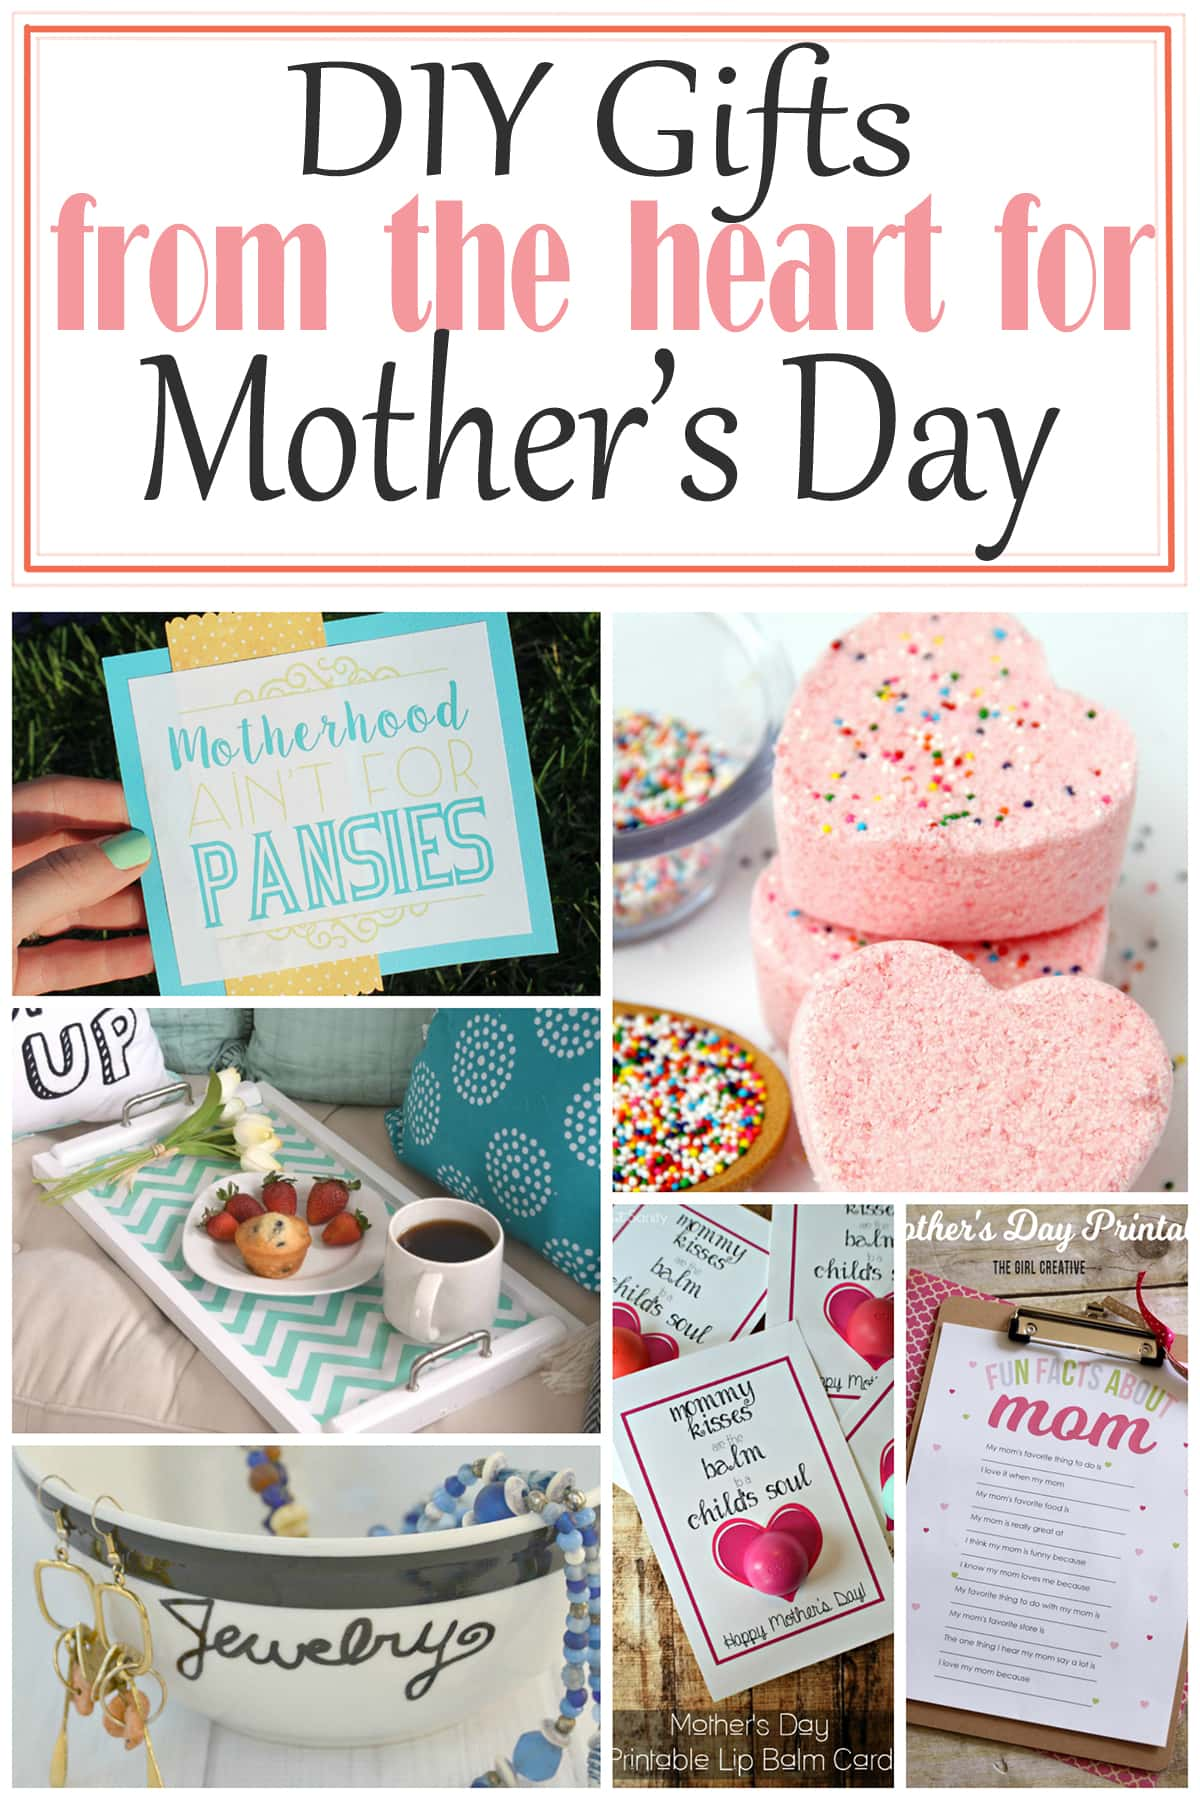 DIY Gifts from the heart for Mother's Day